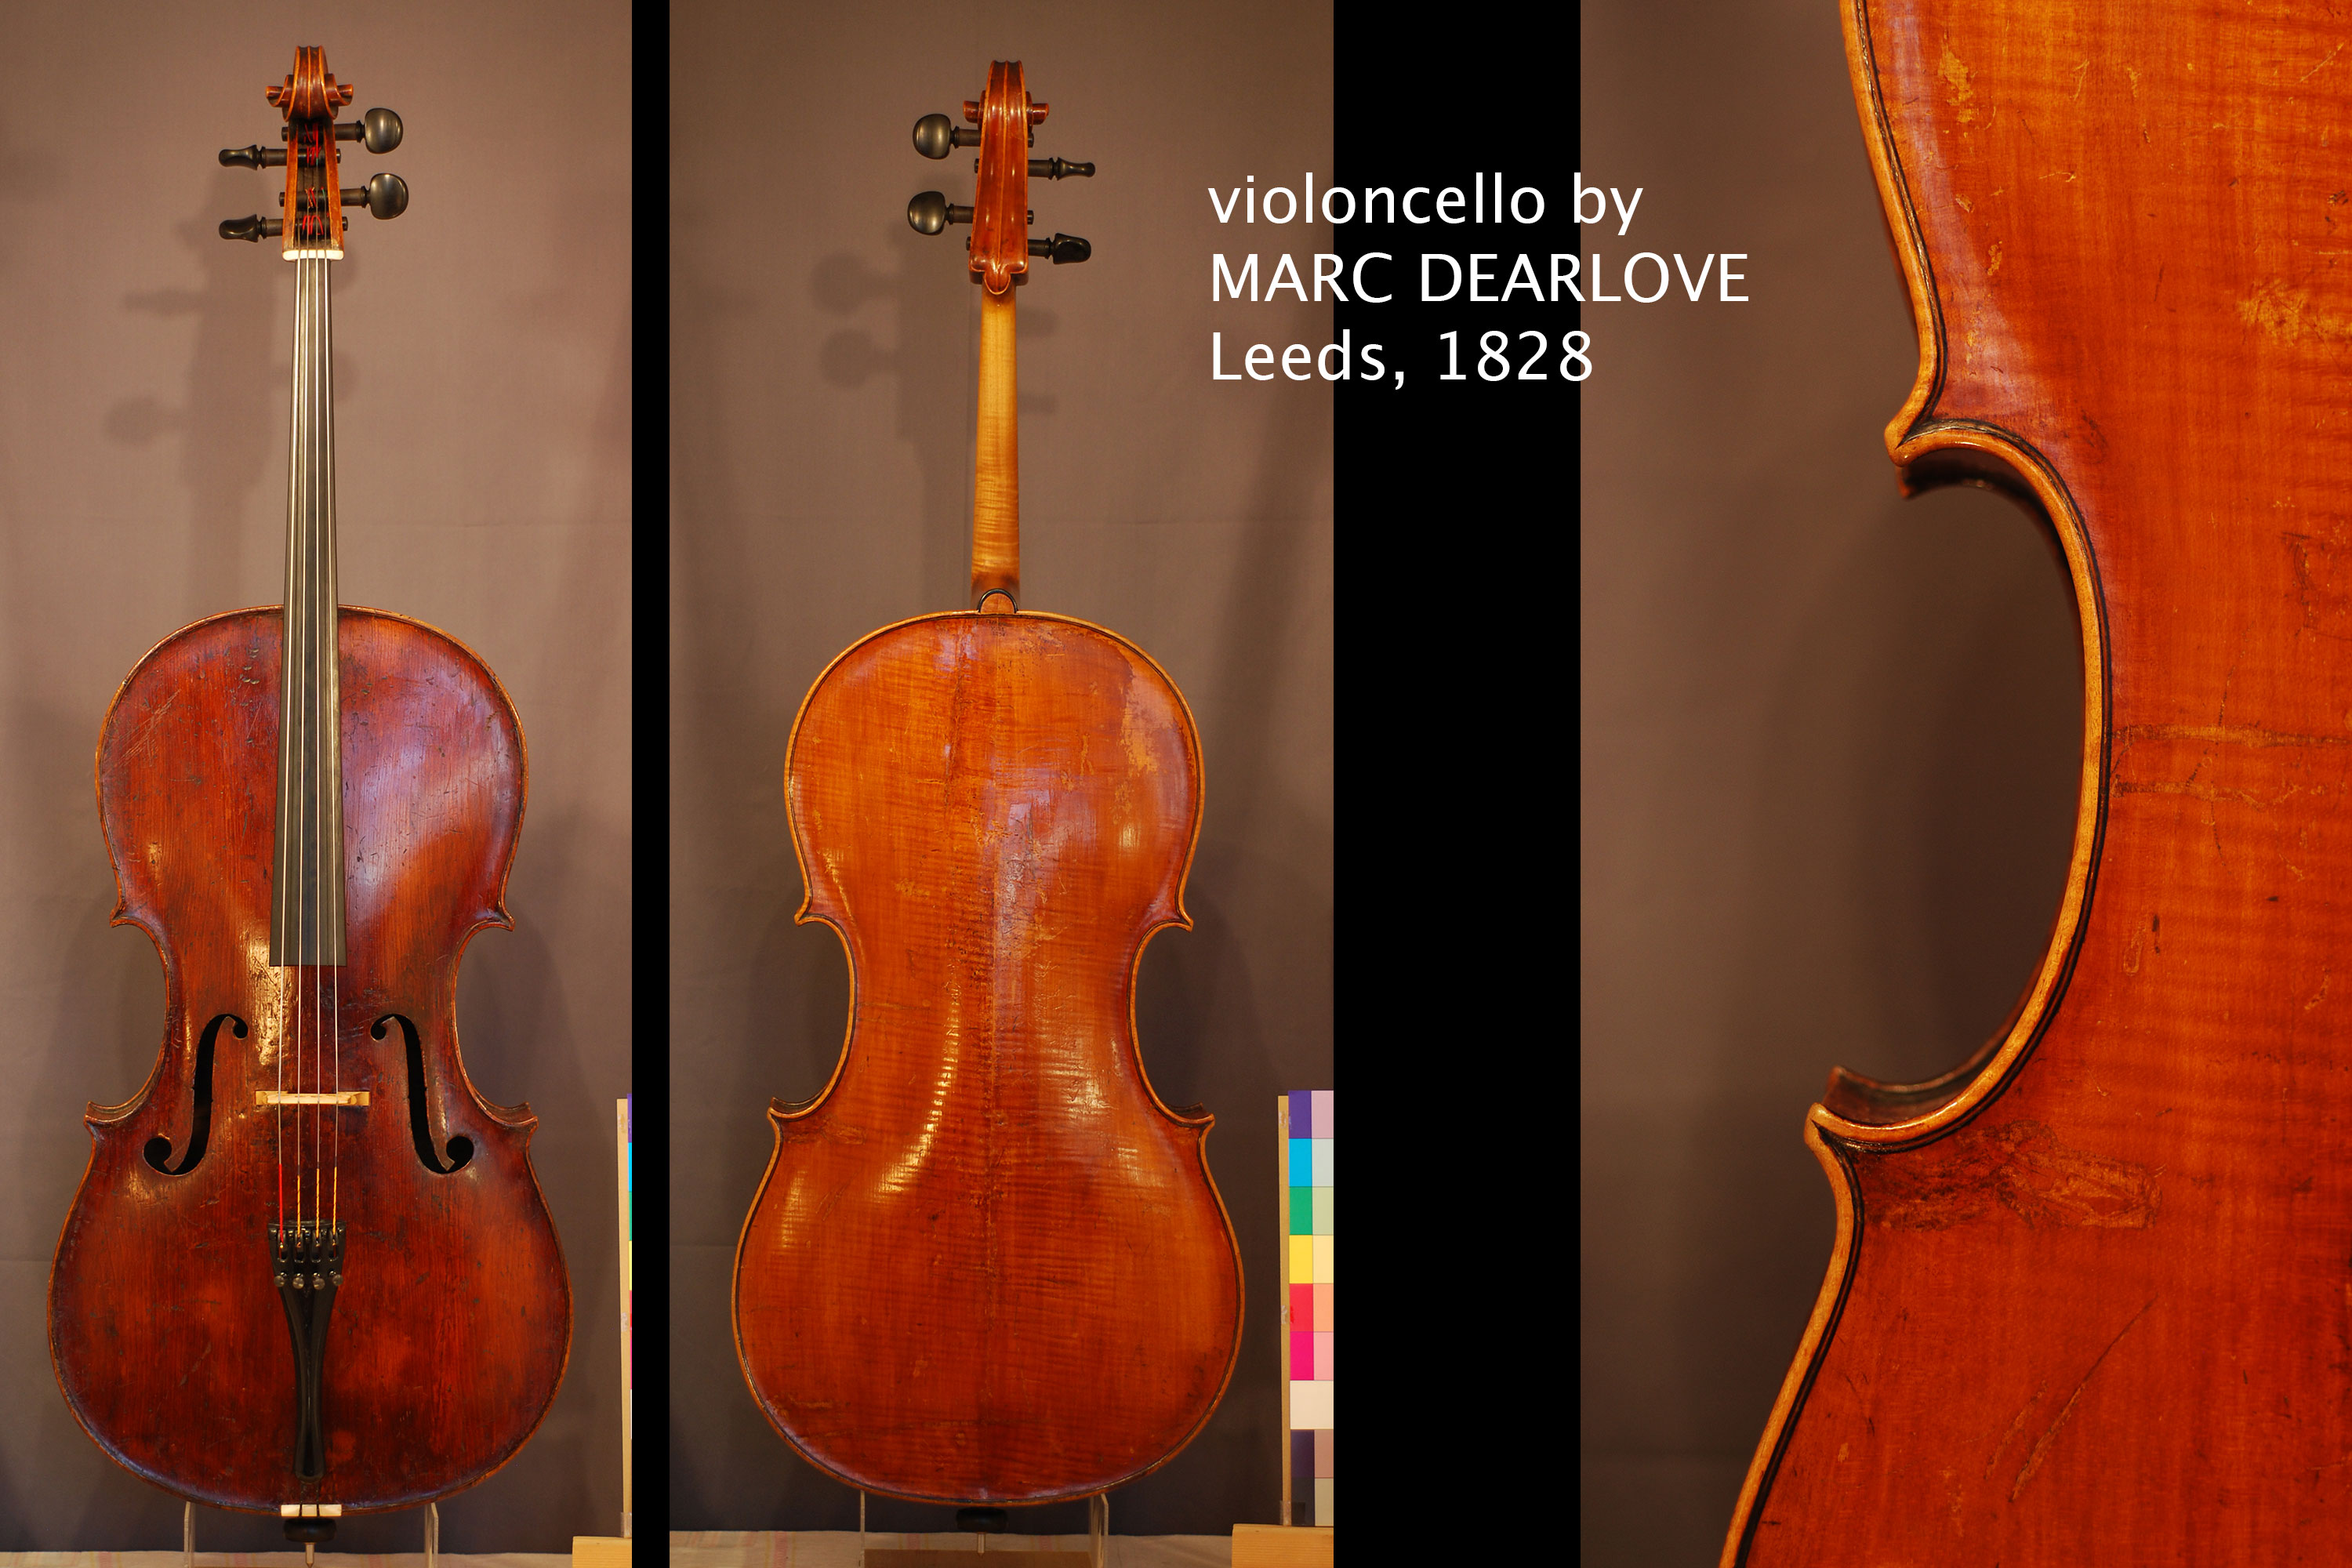 cello dearlove